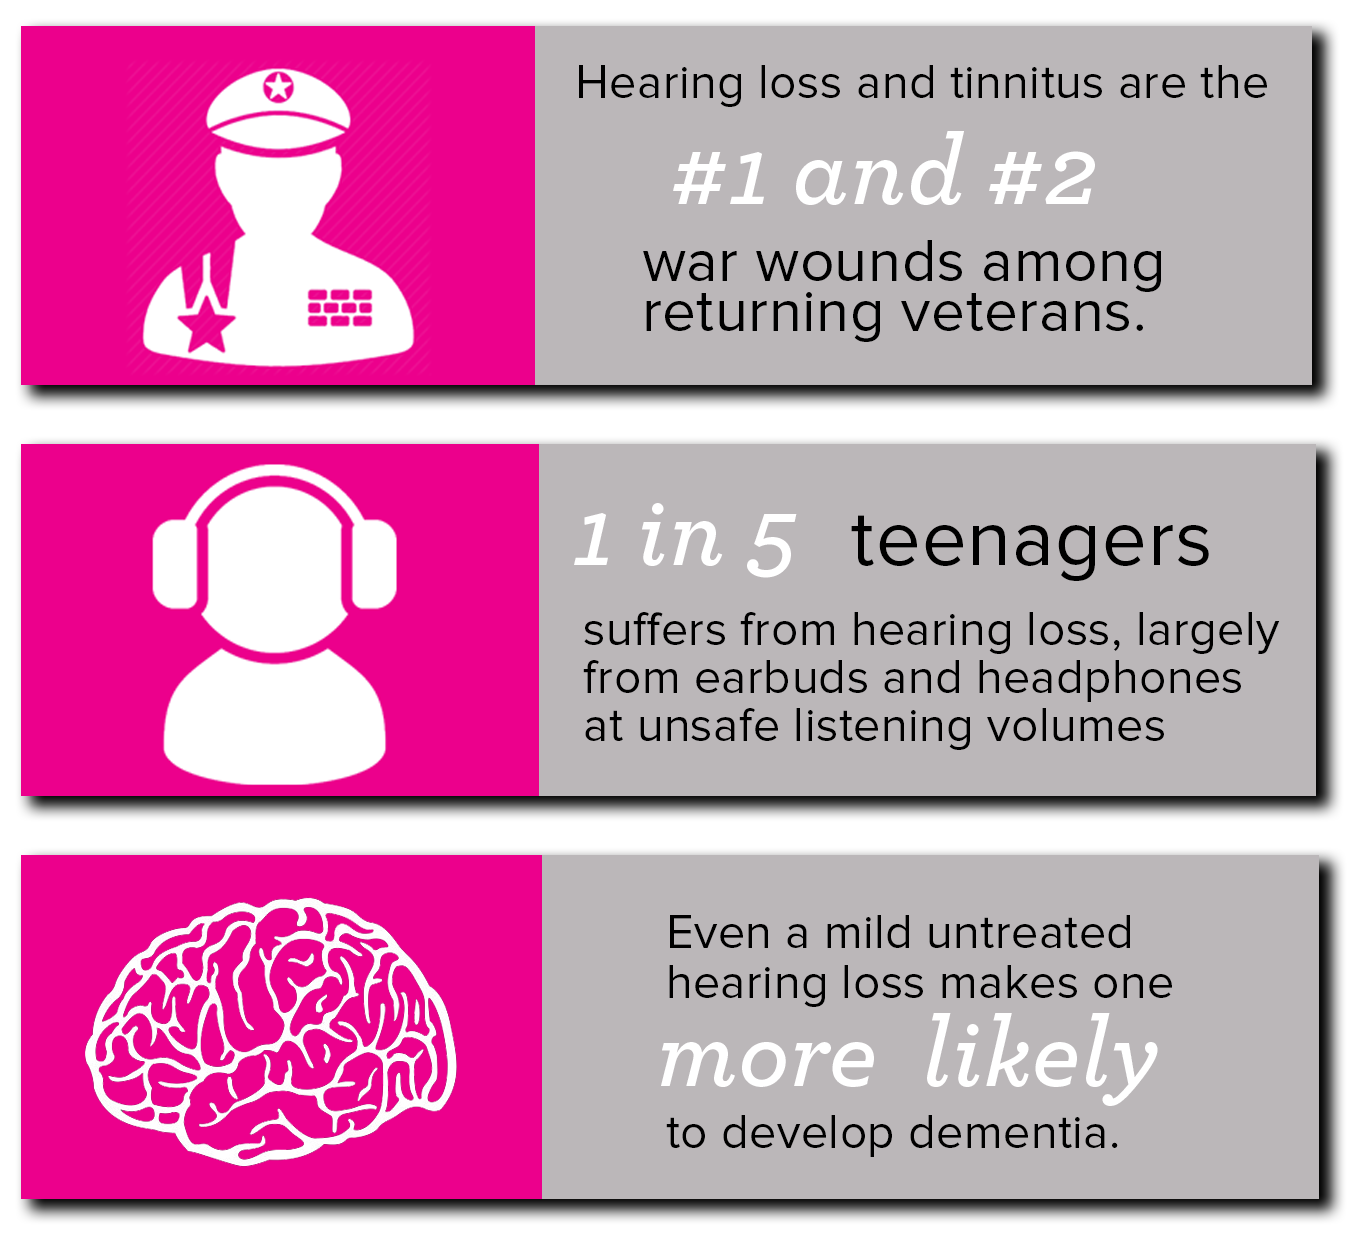 Hearing loss is one of the most common chronic health conditions. It's reached epidemic proportions, particularly among veterans and teenagers. Without treatment, hearing loss can lead to a number of cognitive and physical illnesses and even premature death.